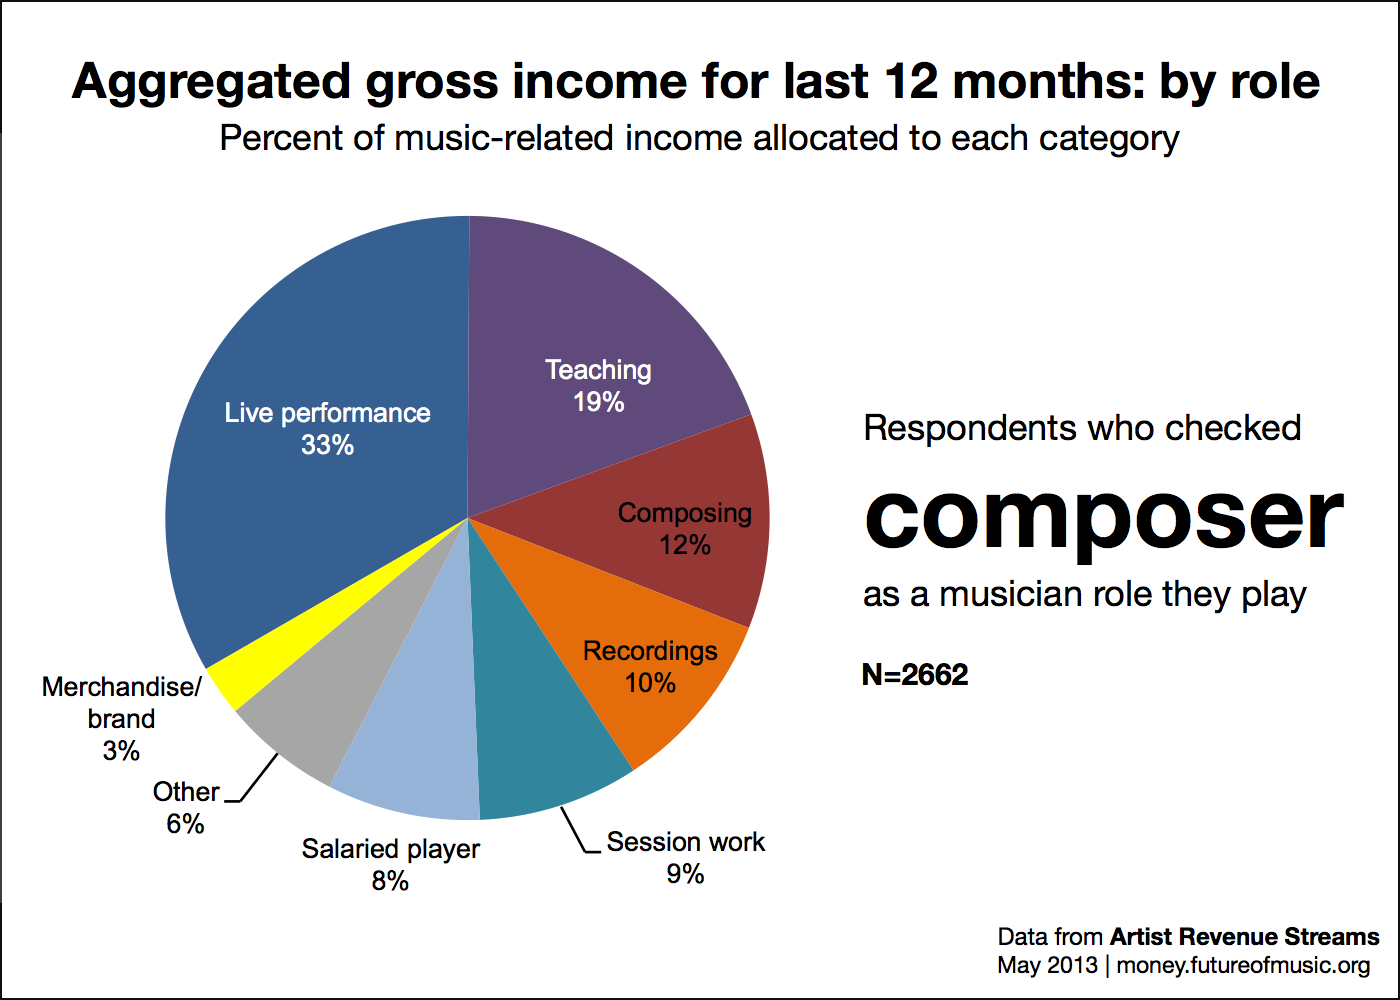 Revenue allocation for role composer